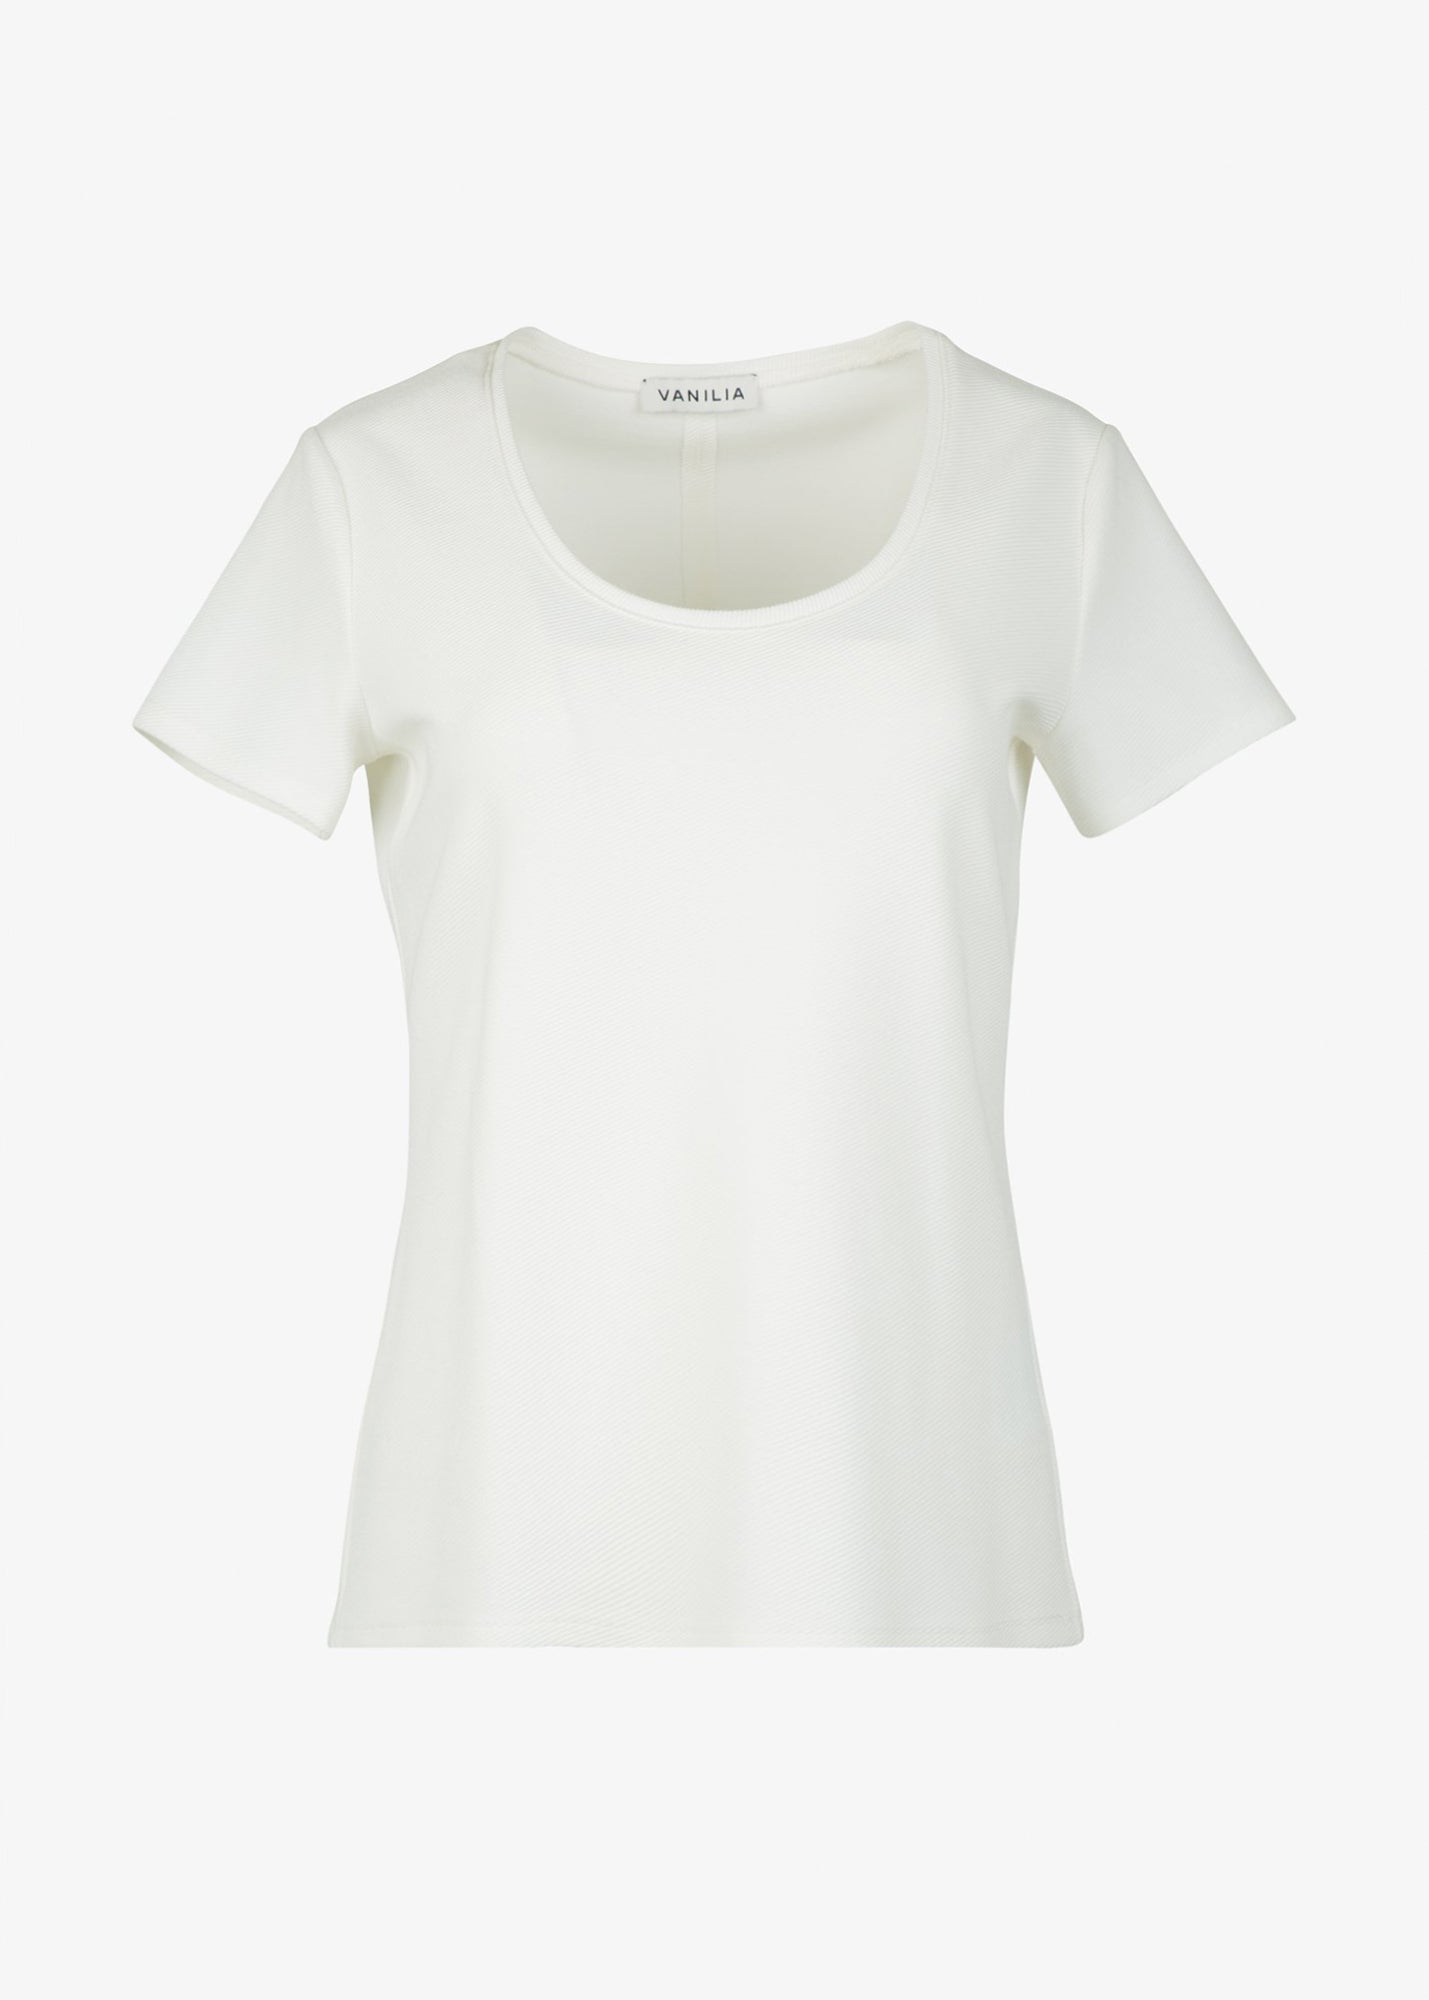 Wit dames t-shirt in rib kwaliteit